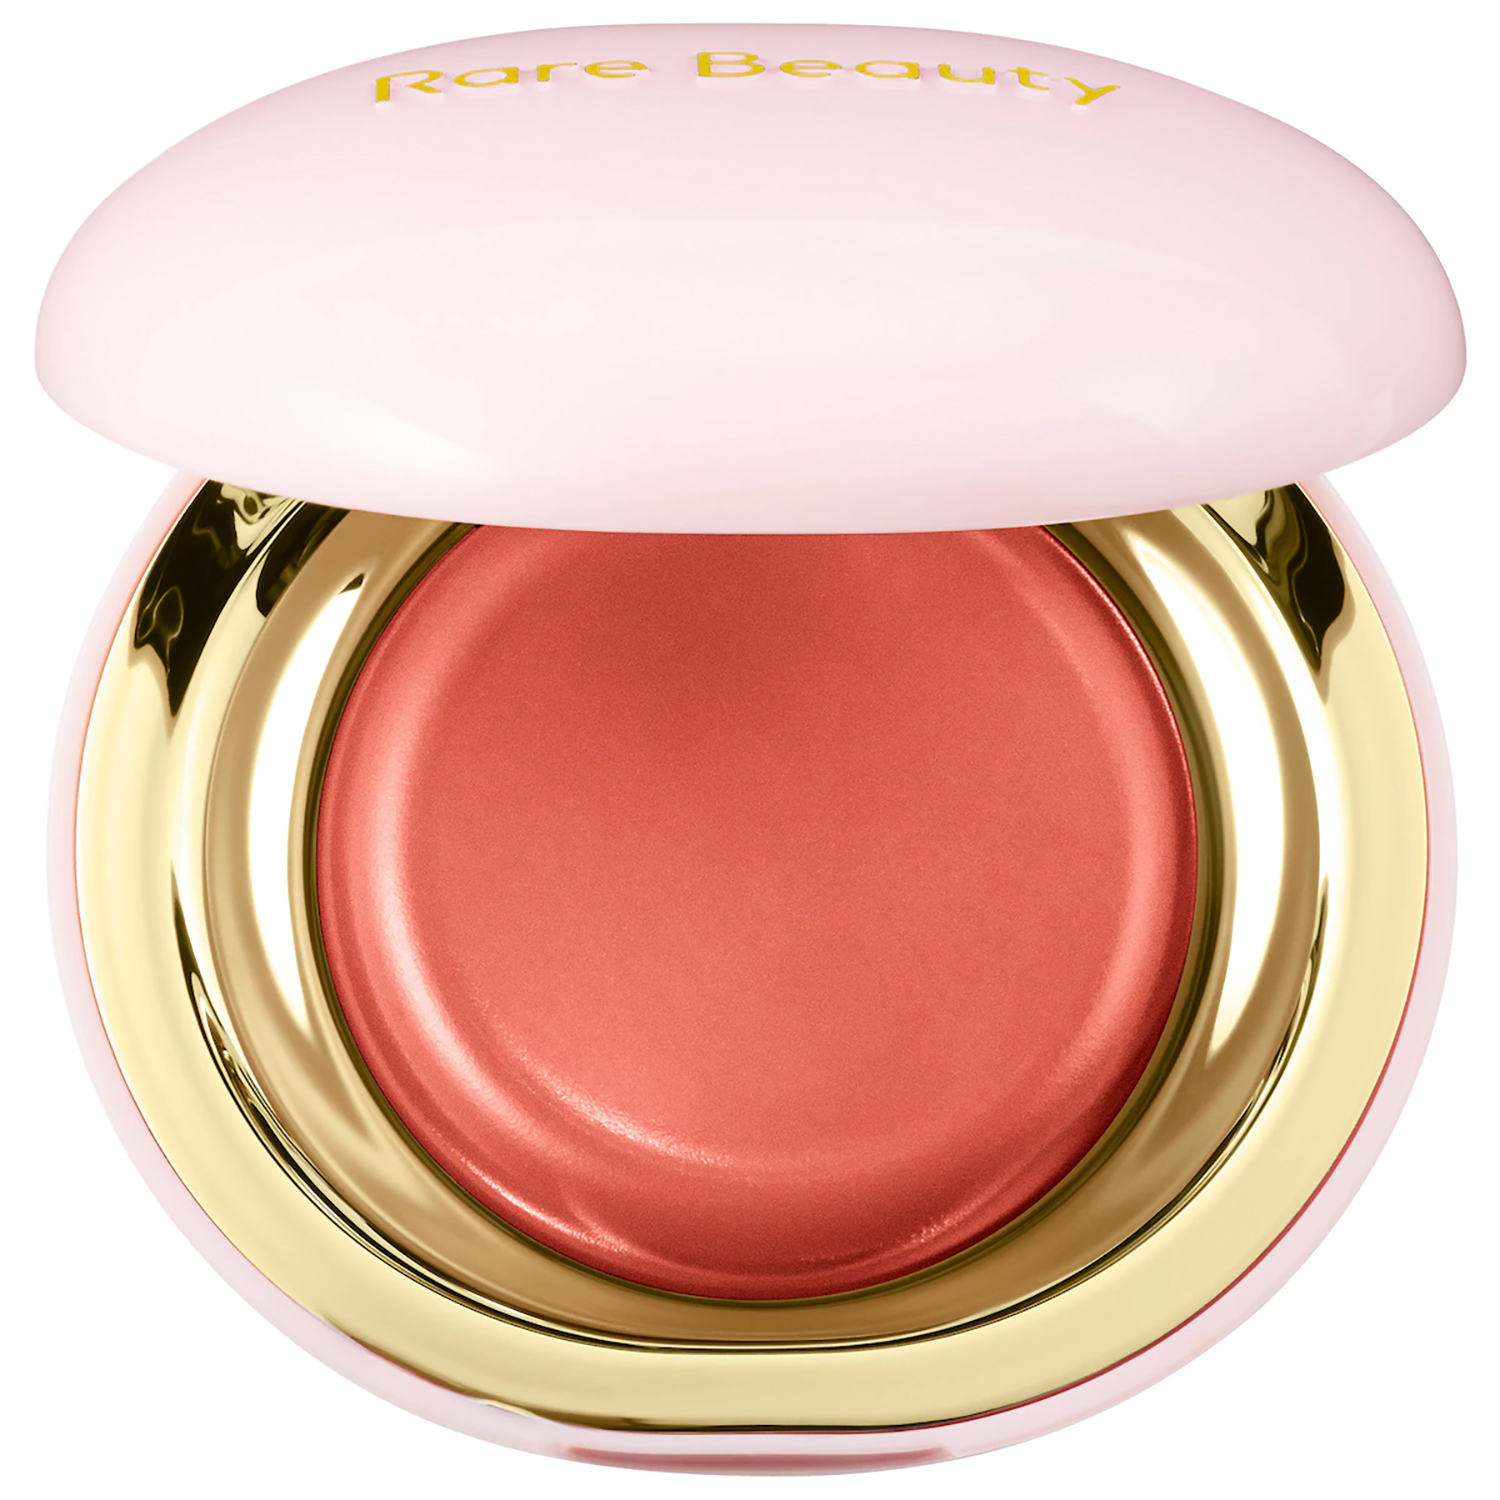 Rare Beauty cream blush